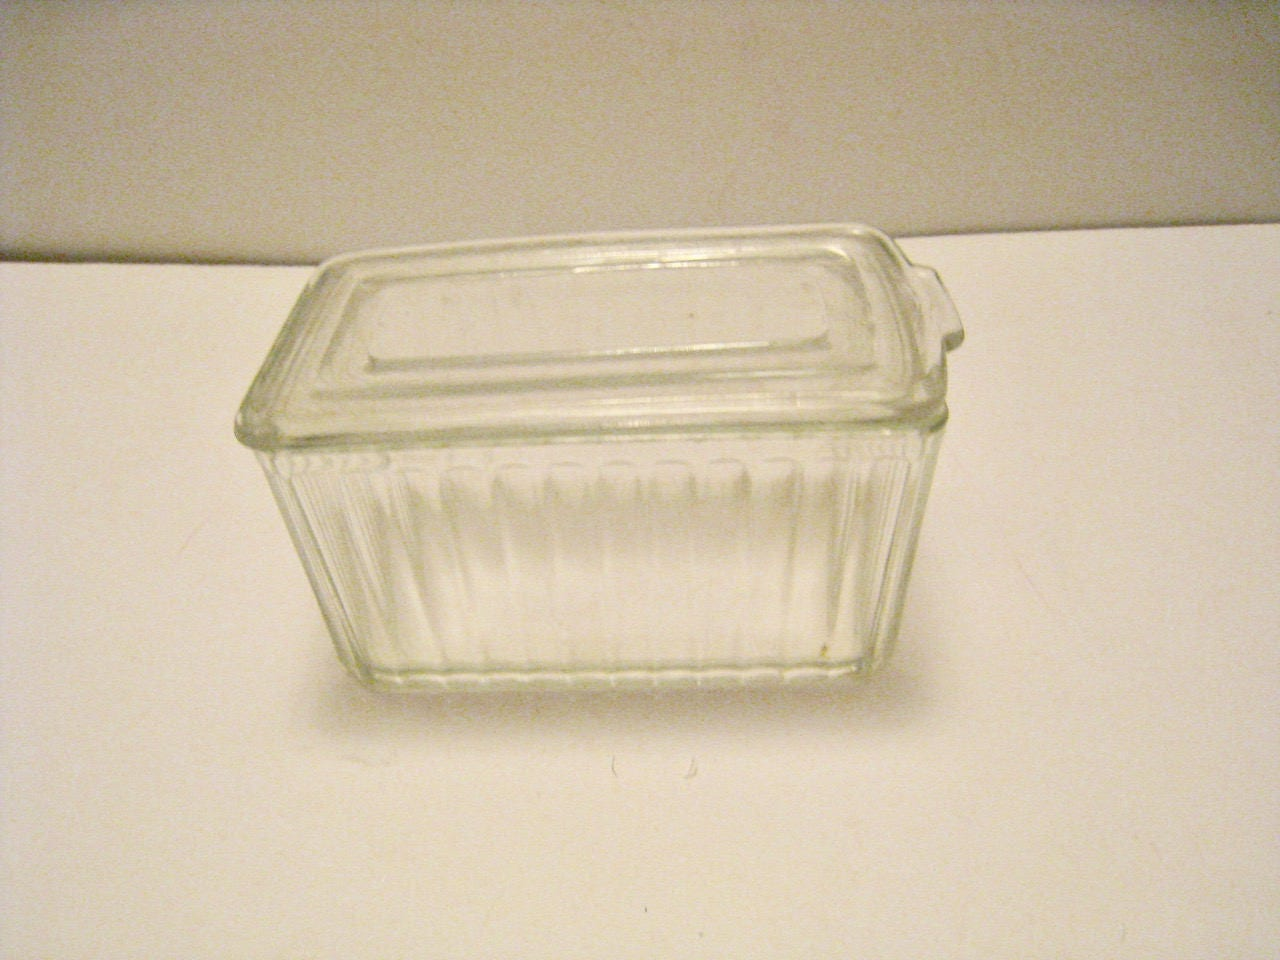 Vintage Westinghouse refrigerator dish with lid Clear glass dish